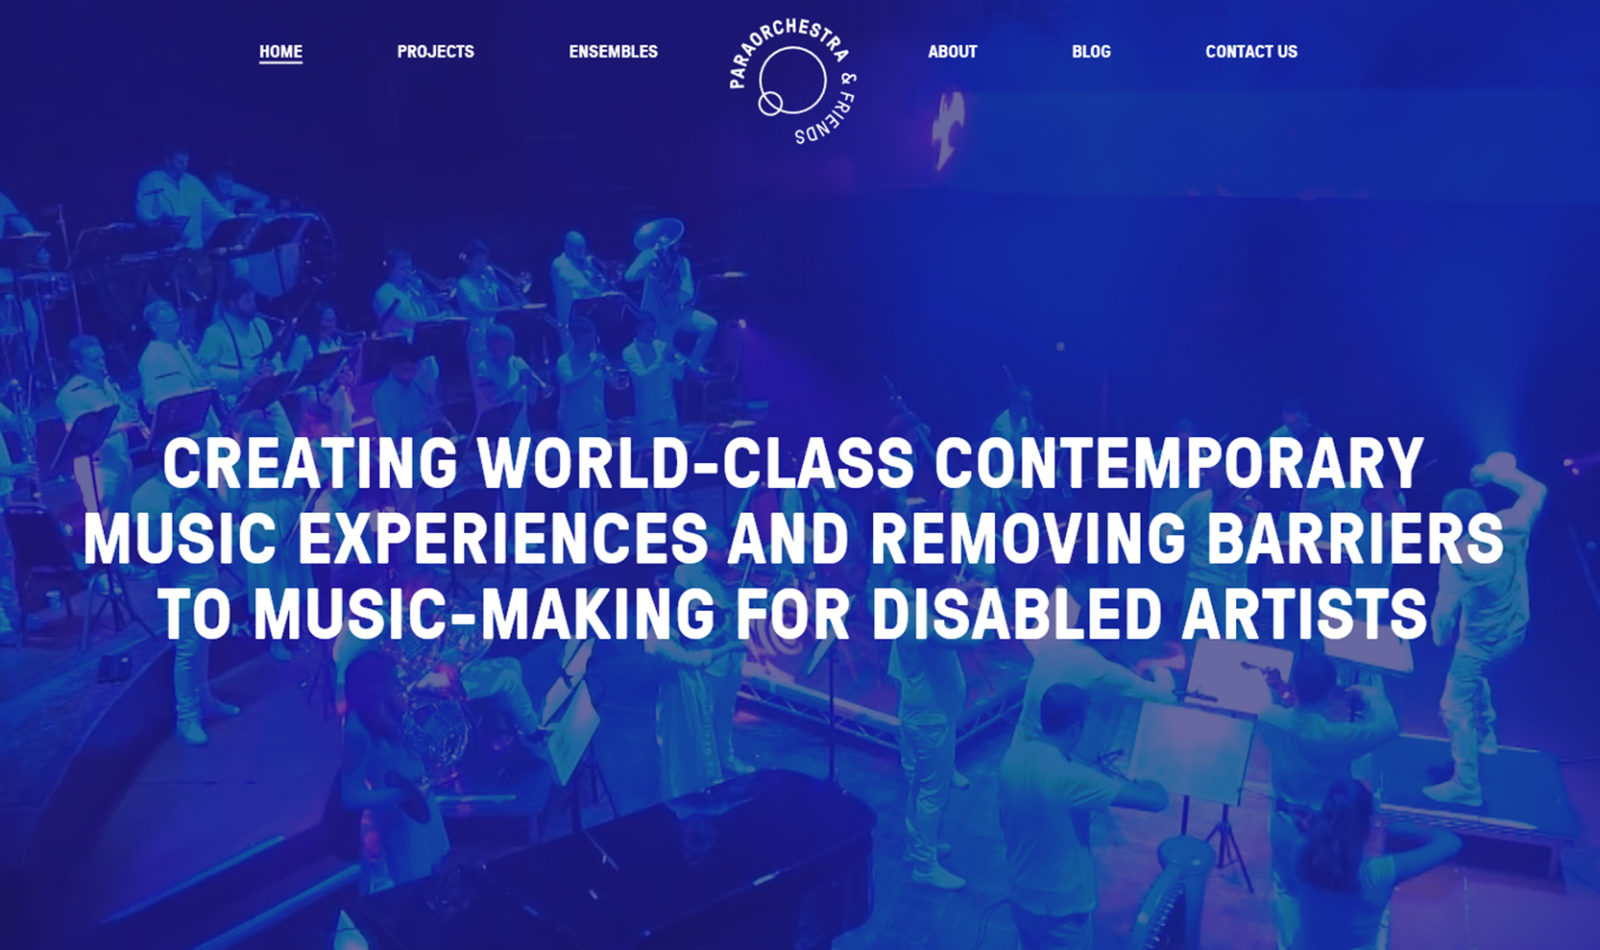 Image is a screenshot of the home page of the Paraorchestra website